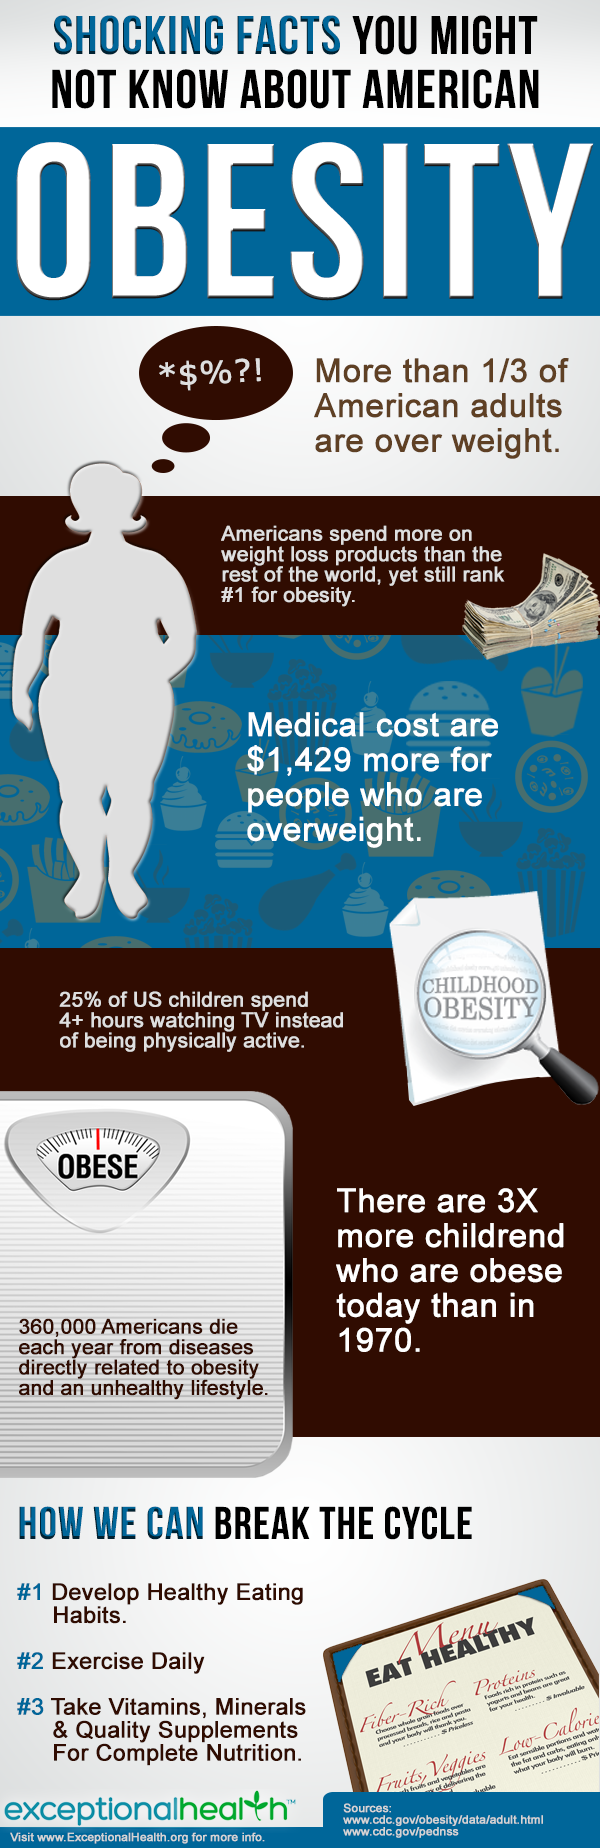 American Obesity Infographic